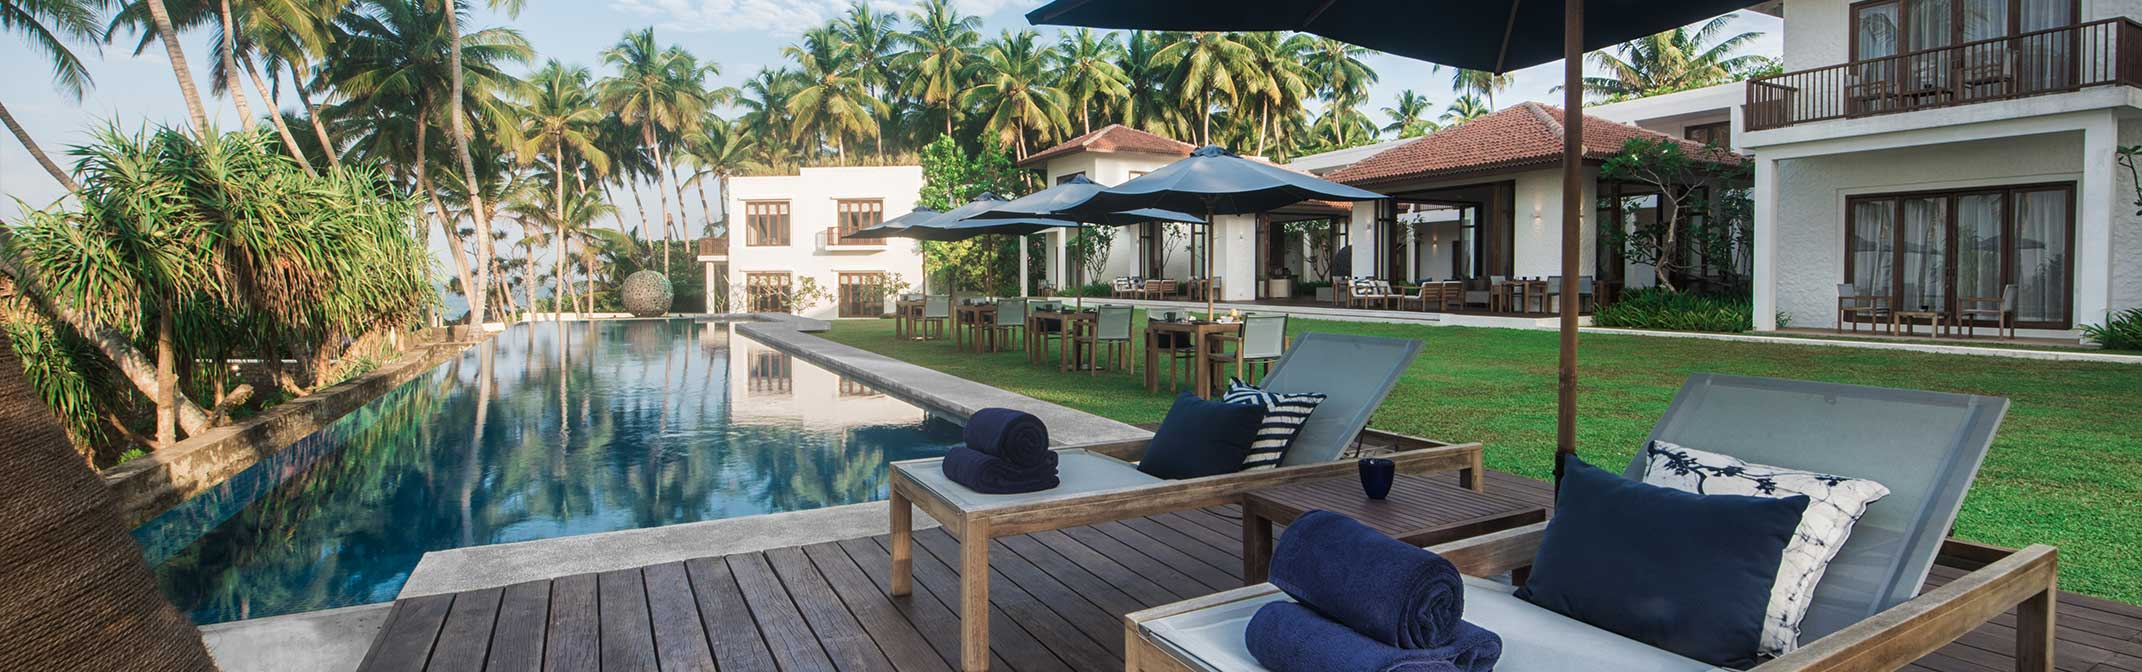 package deals to sri lanka